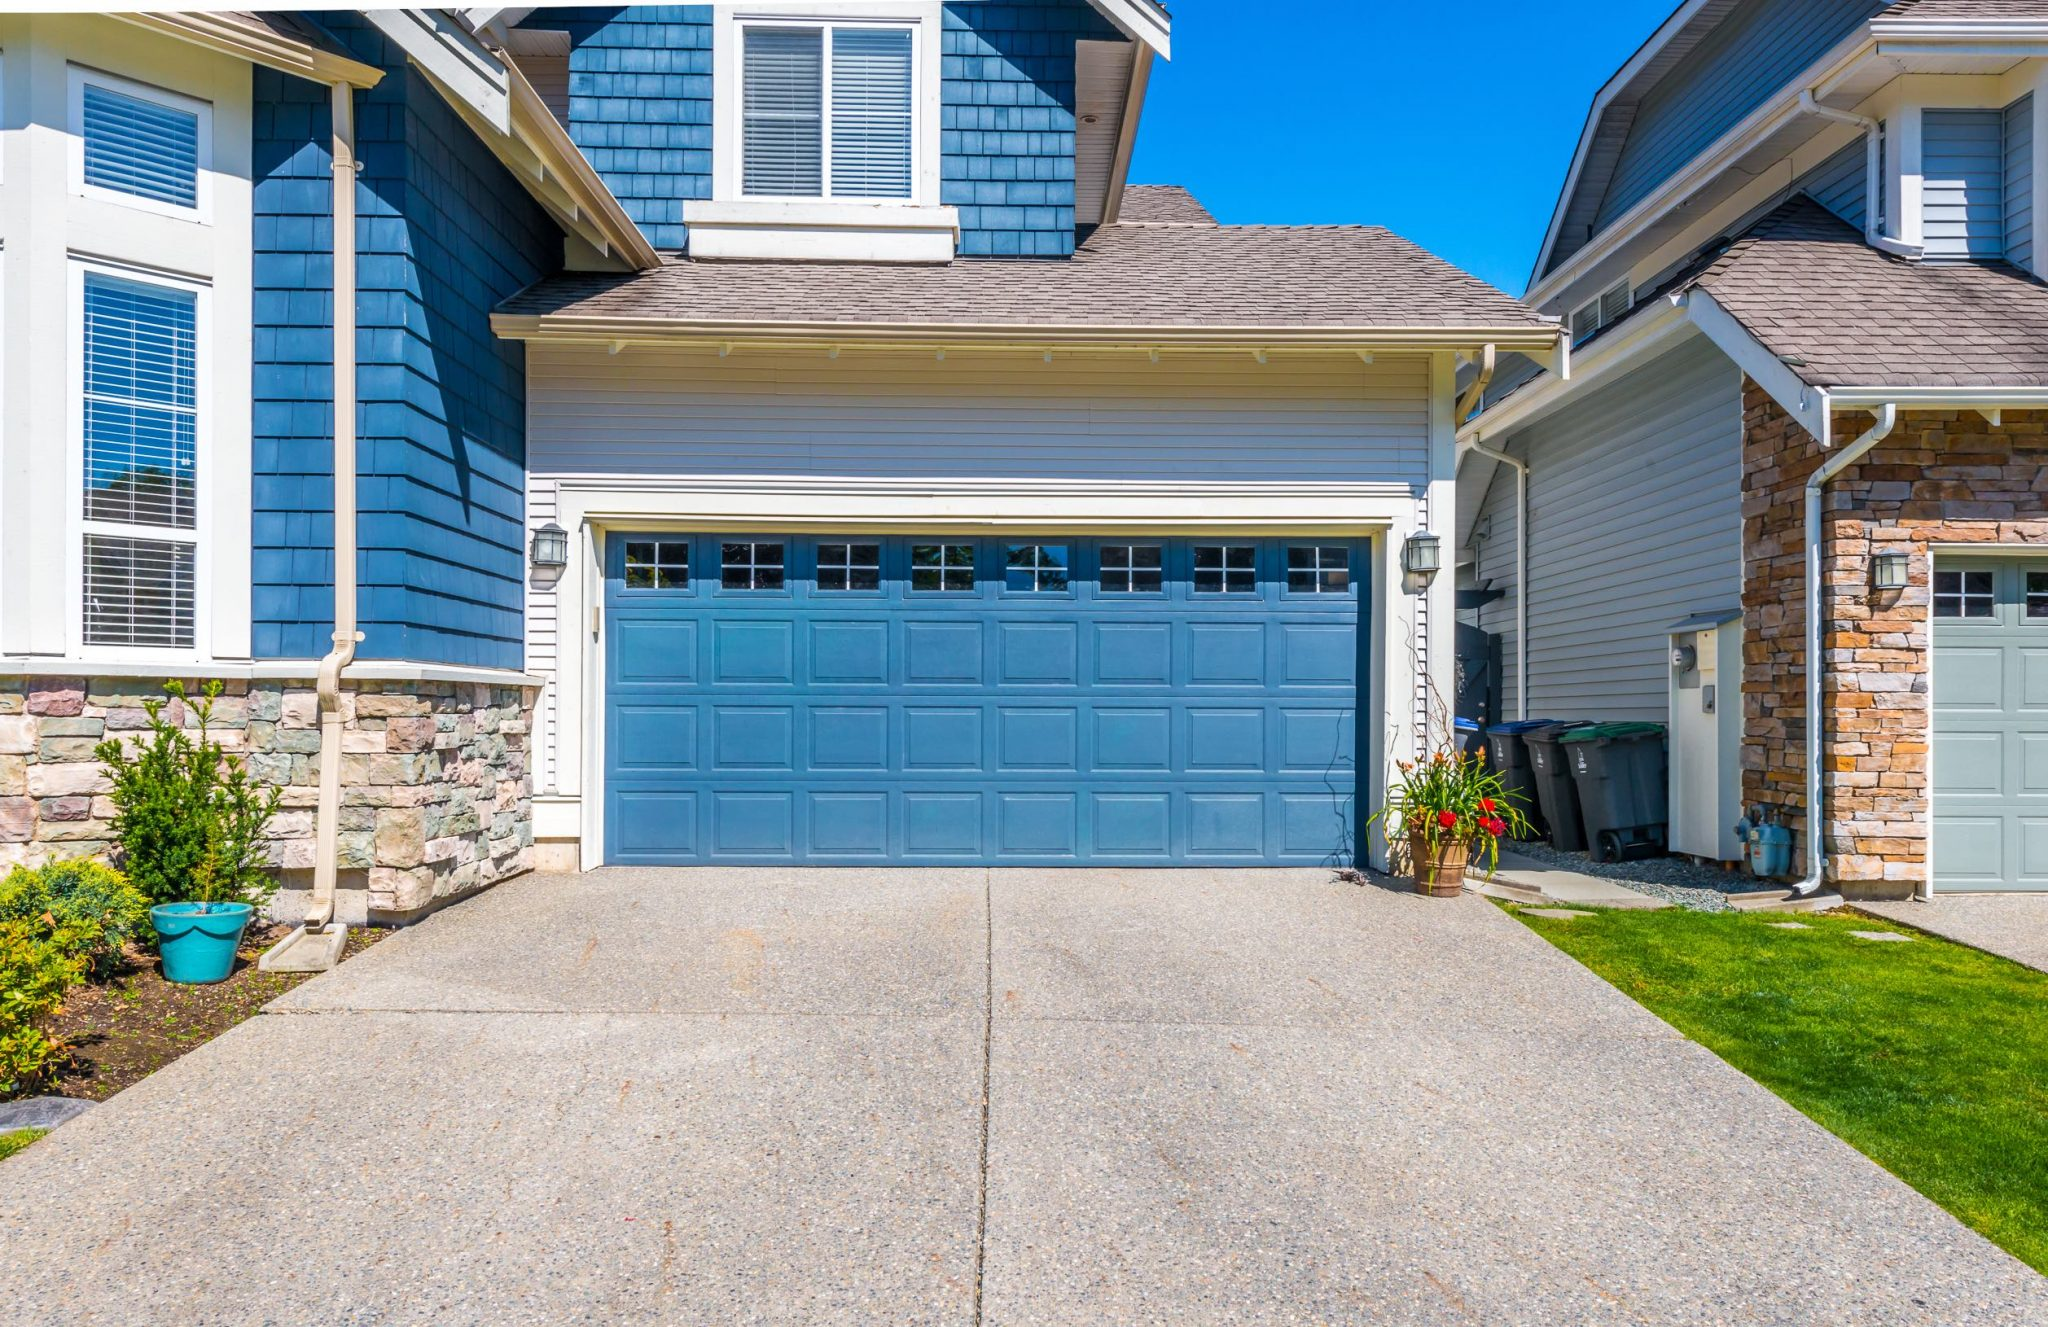 Garage Door Repair Images Wall Decorating Ideas